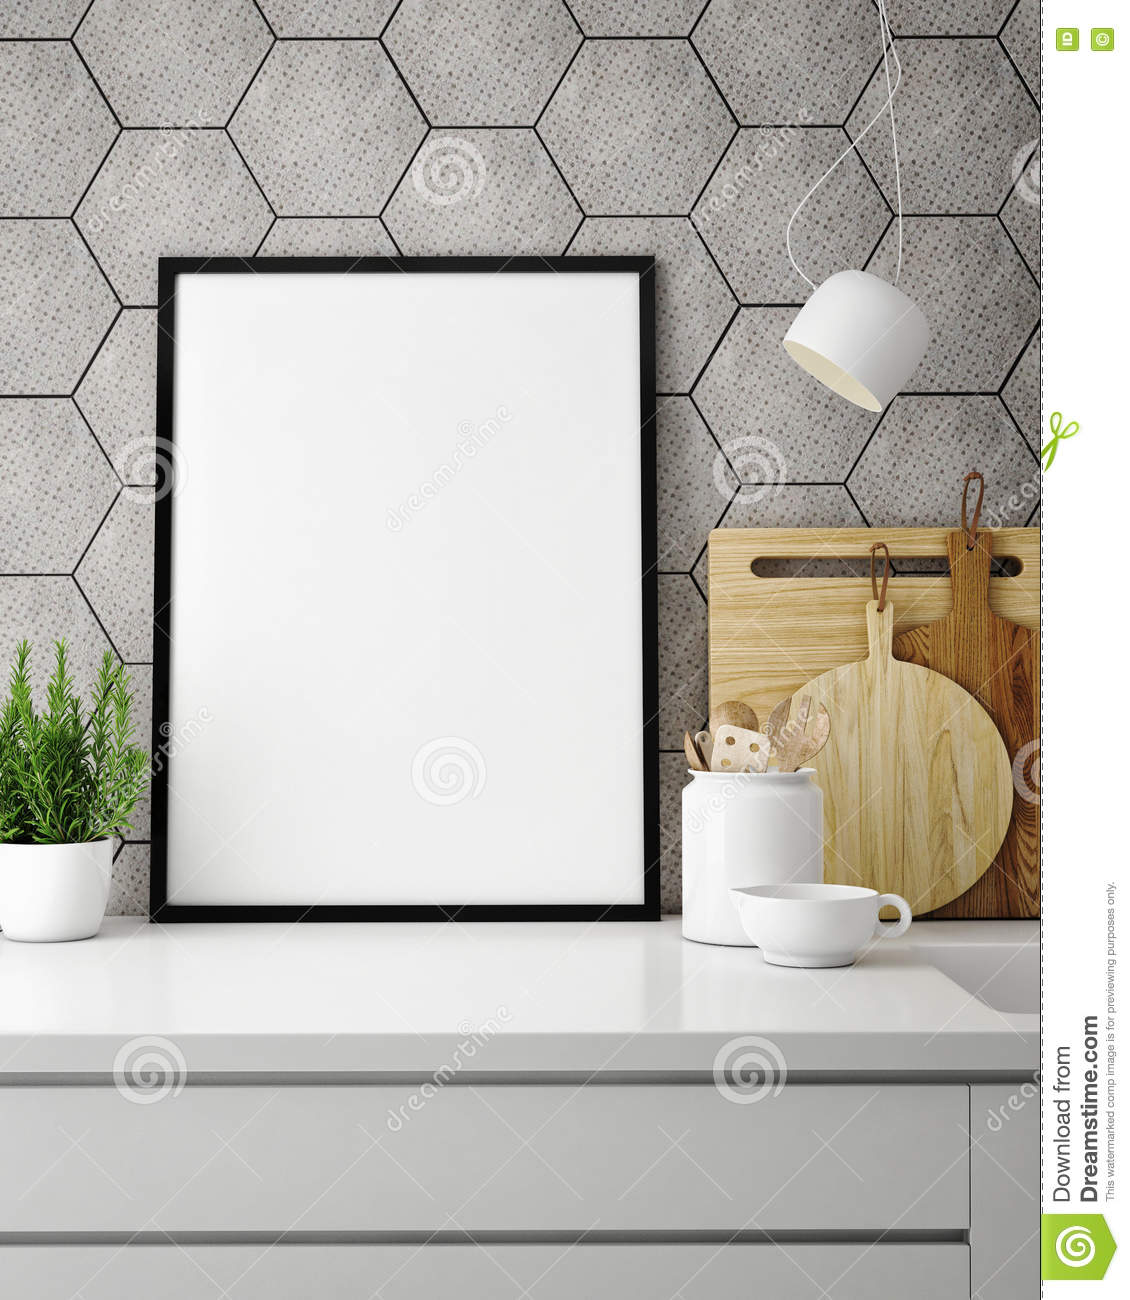 Excellent Mock Up Poster Frame In Hipster Kitchen, Interior Backround Stock  EX68